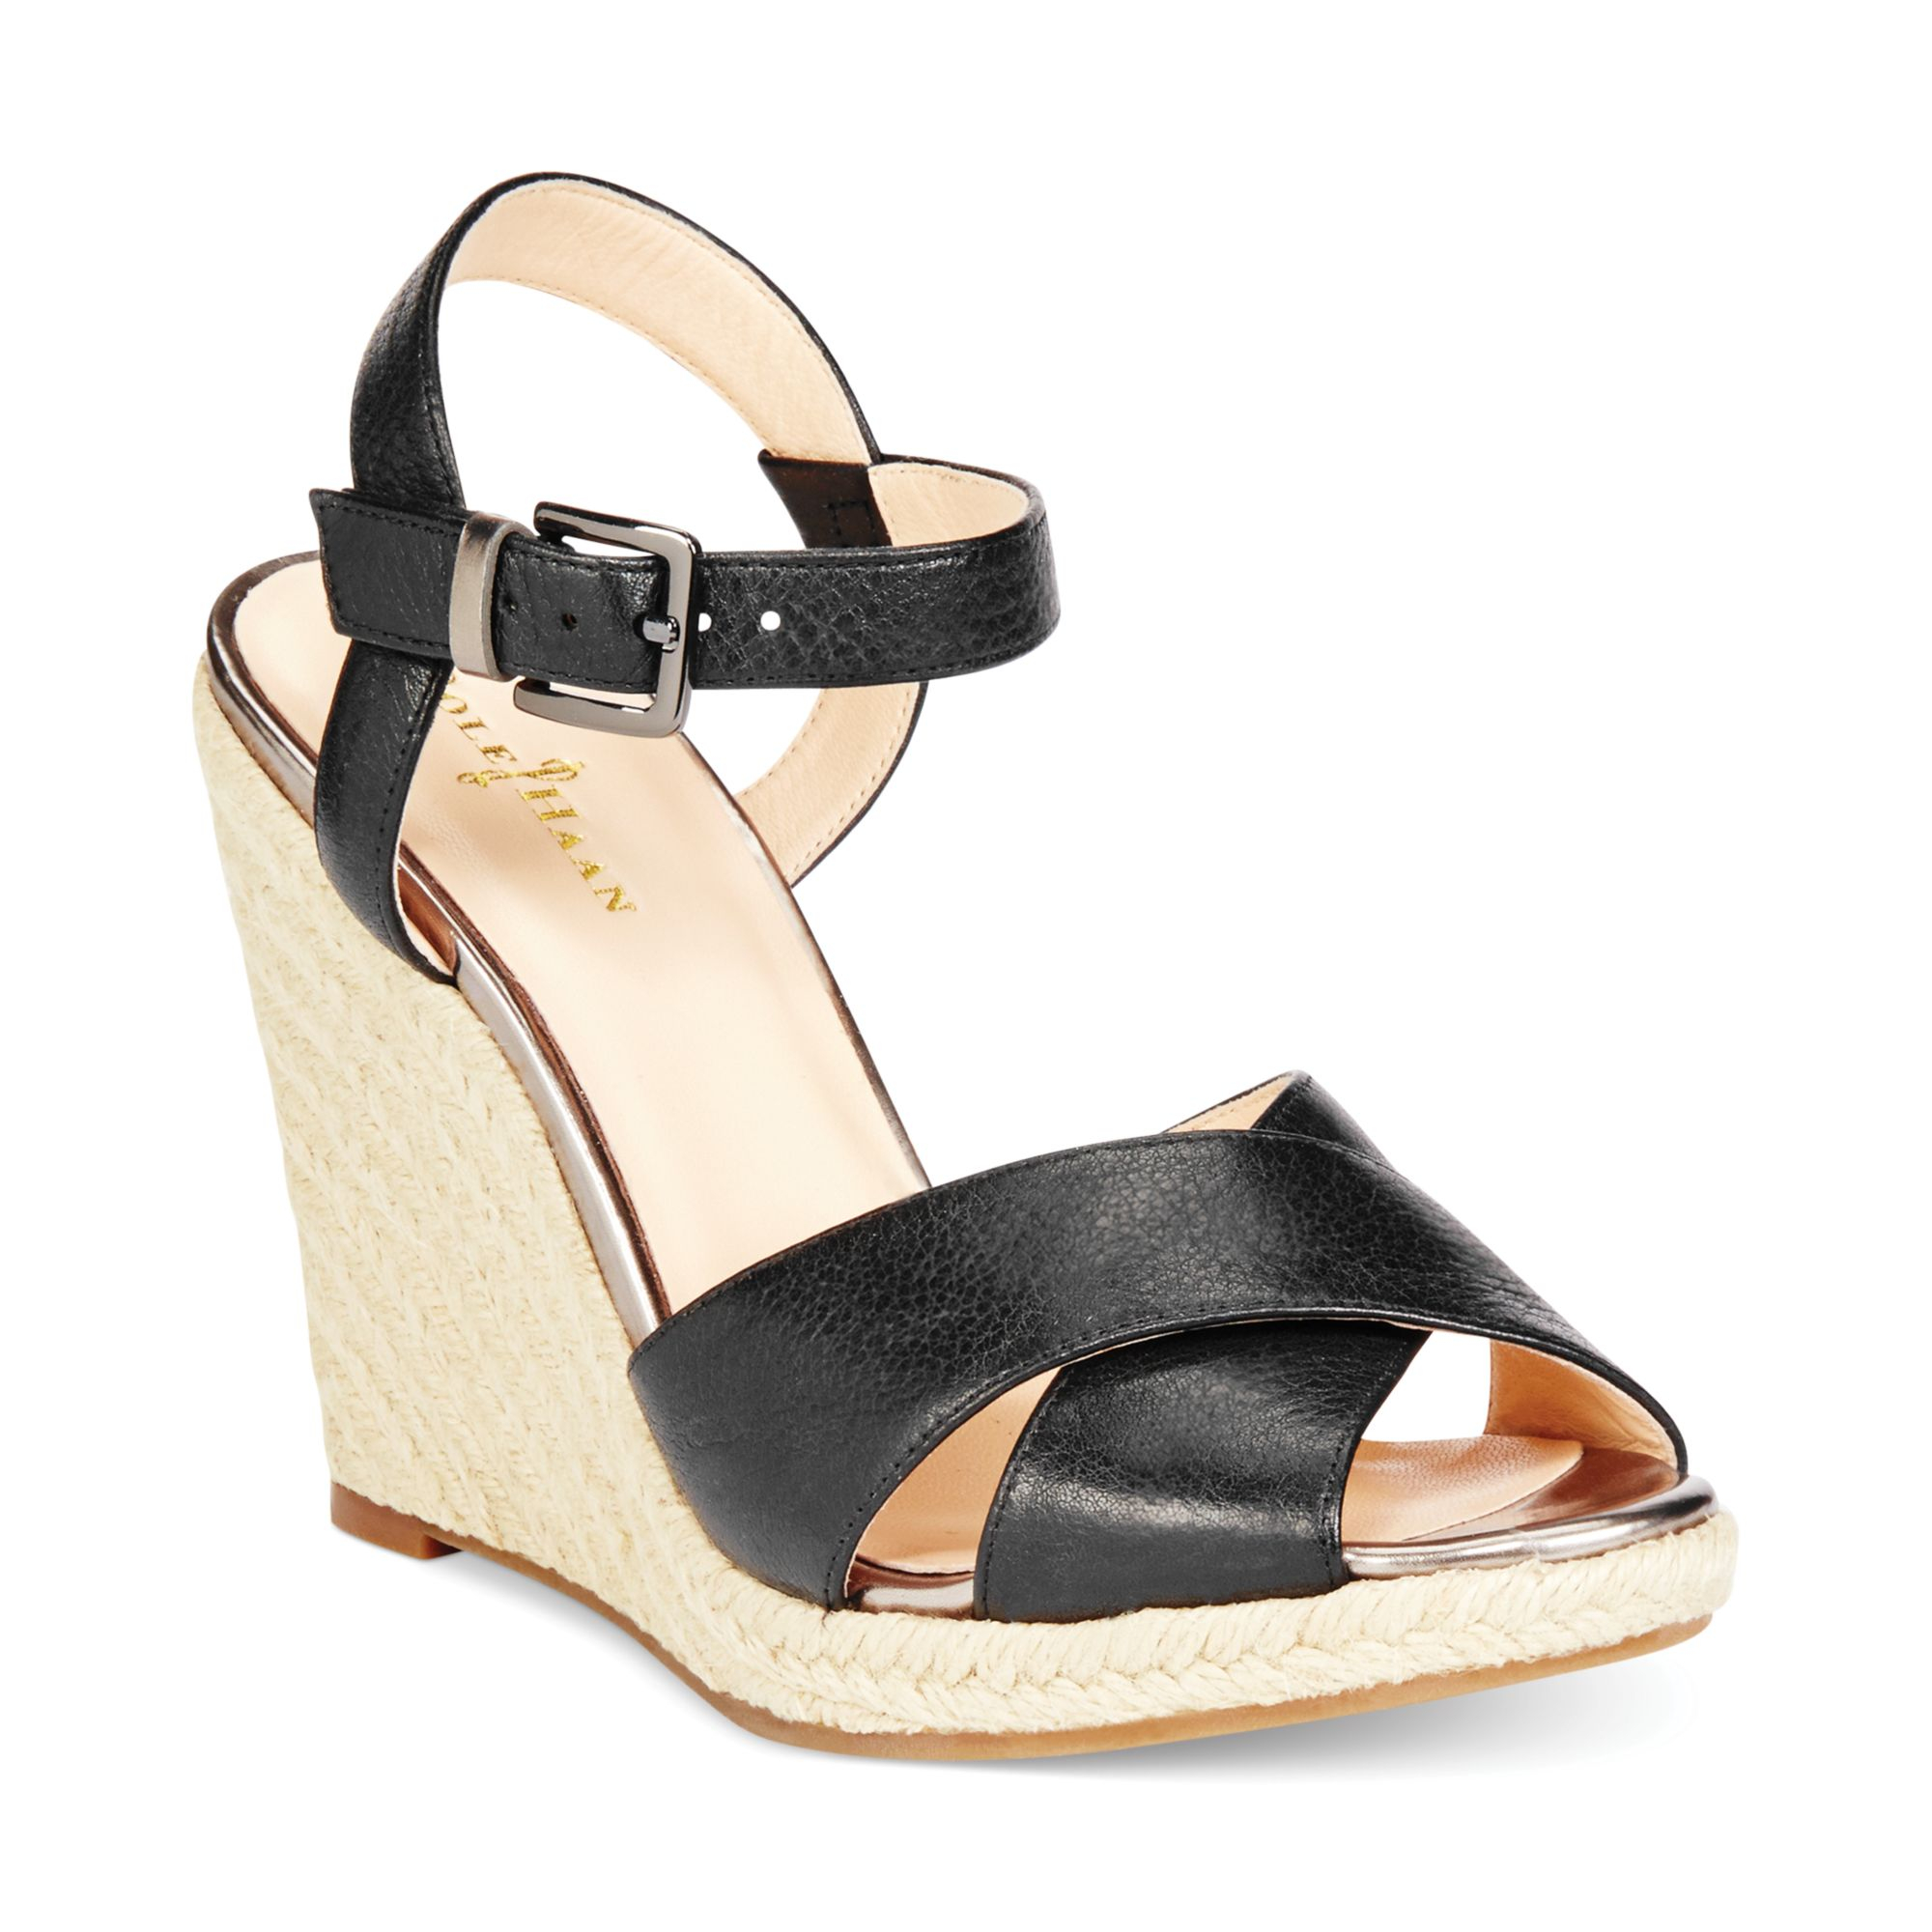 Elegant Buy Cole Haan Womens Anica Slip Slide Sandal And Other Slides At  Our Wide Selection Is Eligible For Free Shipping And Free Returns Slip On Anica And Prepare For A Day Of Sunshiny Surprises Featuring Prominent Double Straps, This Warm